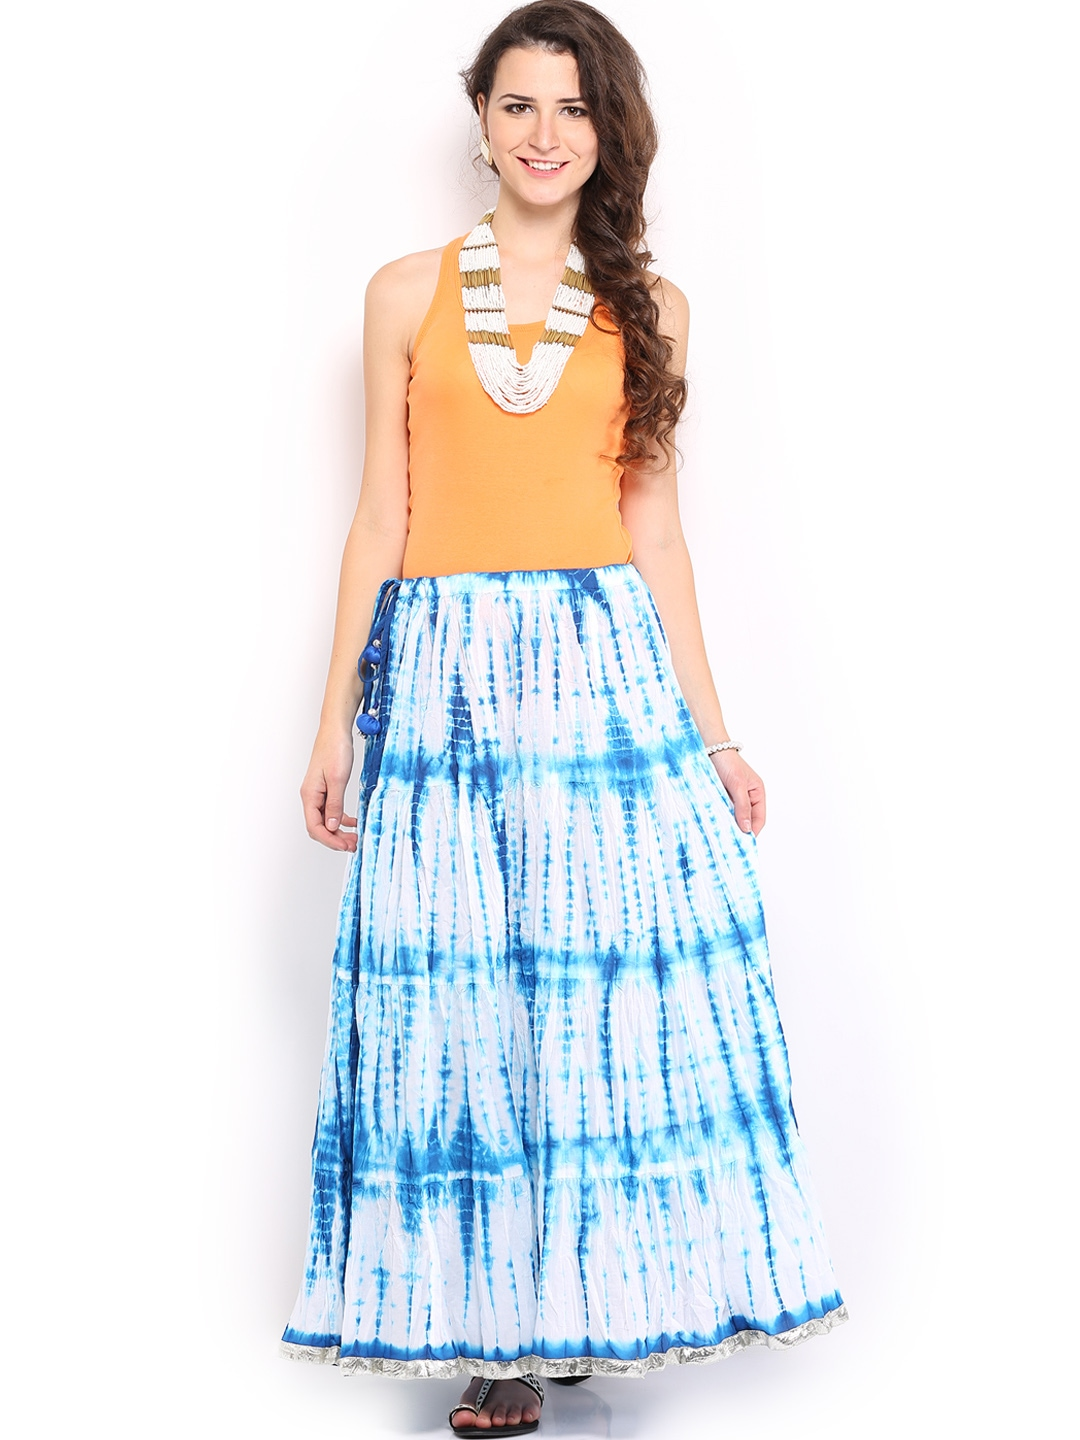 The Twilight Temptation Navy Blue Floral Print Maxi Skirt becomes more and more irresistible as the sun sets! Blue, taupe, and white, plus bursts of purple and fuchsia, create a stunning floral print across this pleated woven maxi skirt with a high, elasticized waist for a custom fit/5(11).